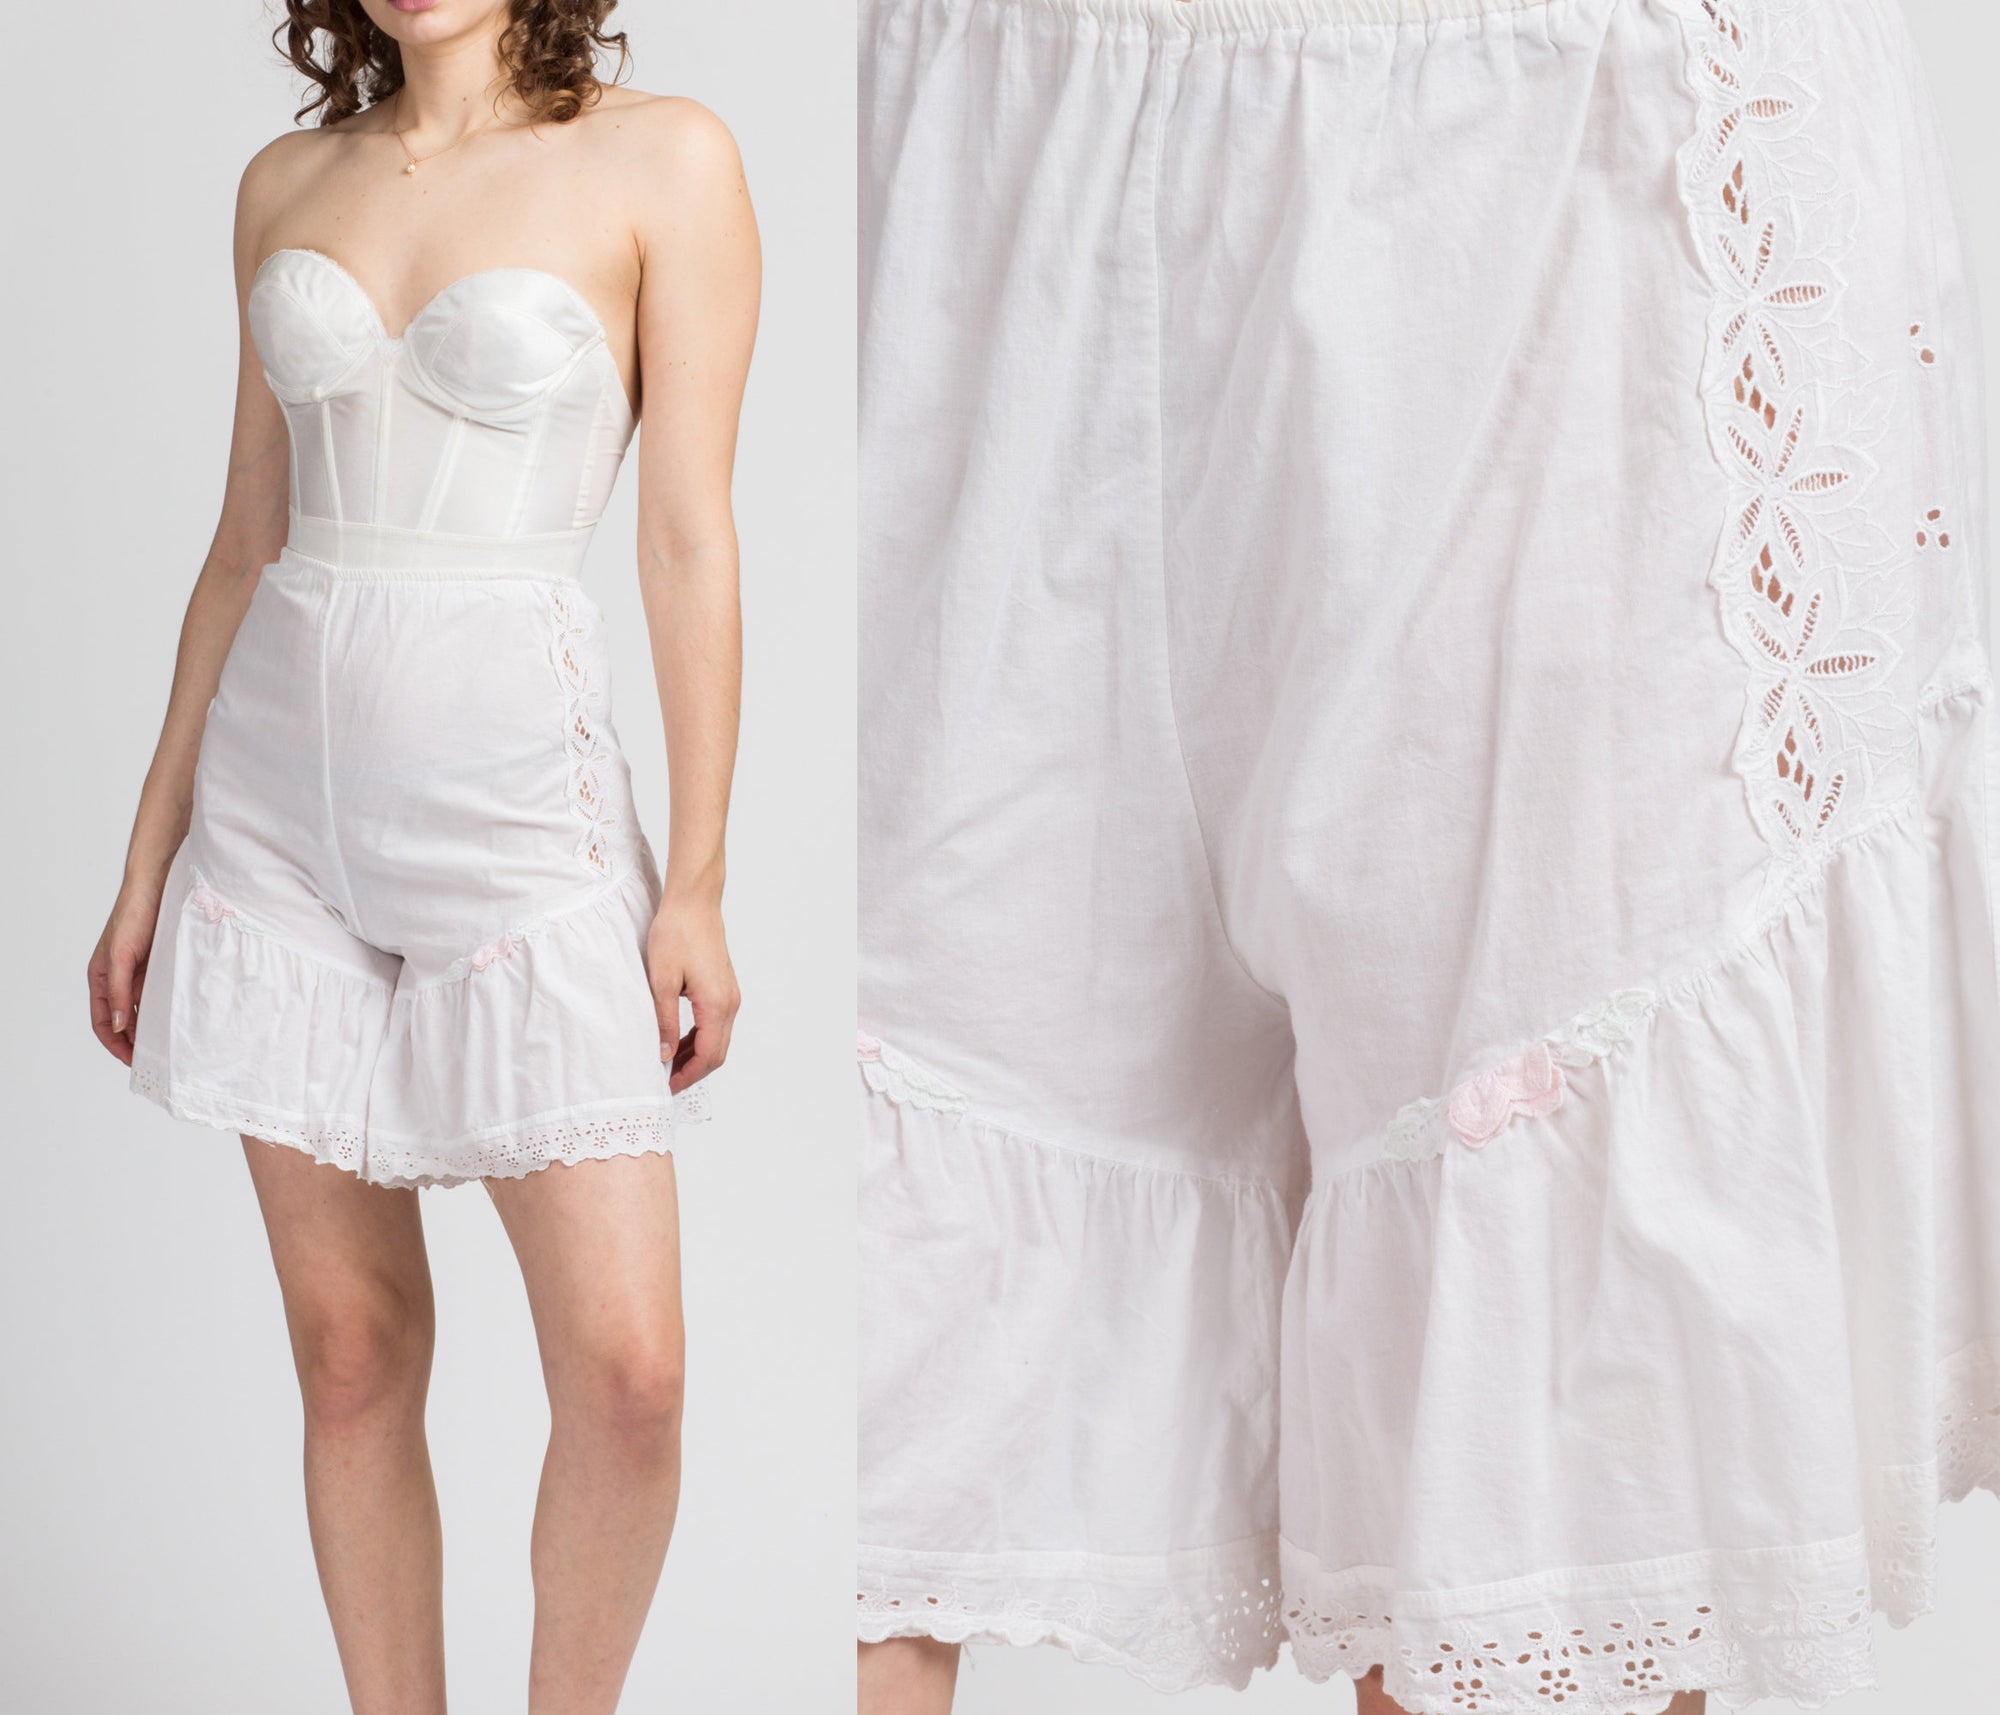 70s White Eyelet Lace Ruffled Bloomers - XL to XXL